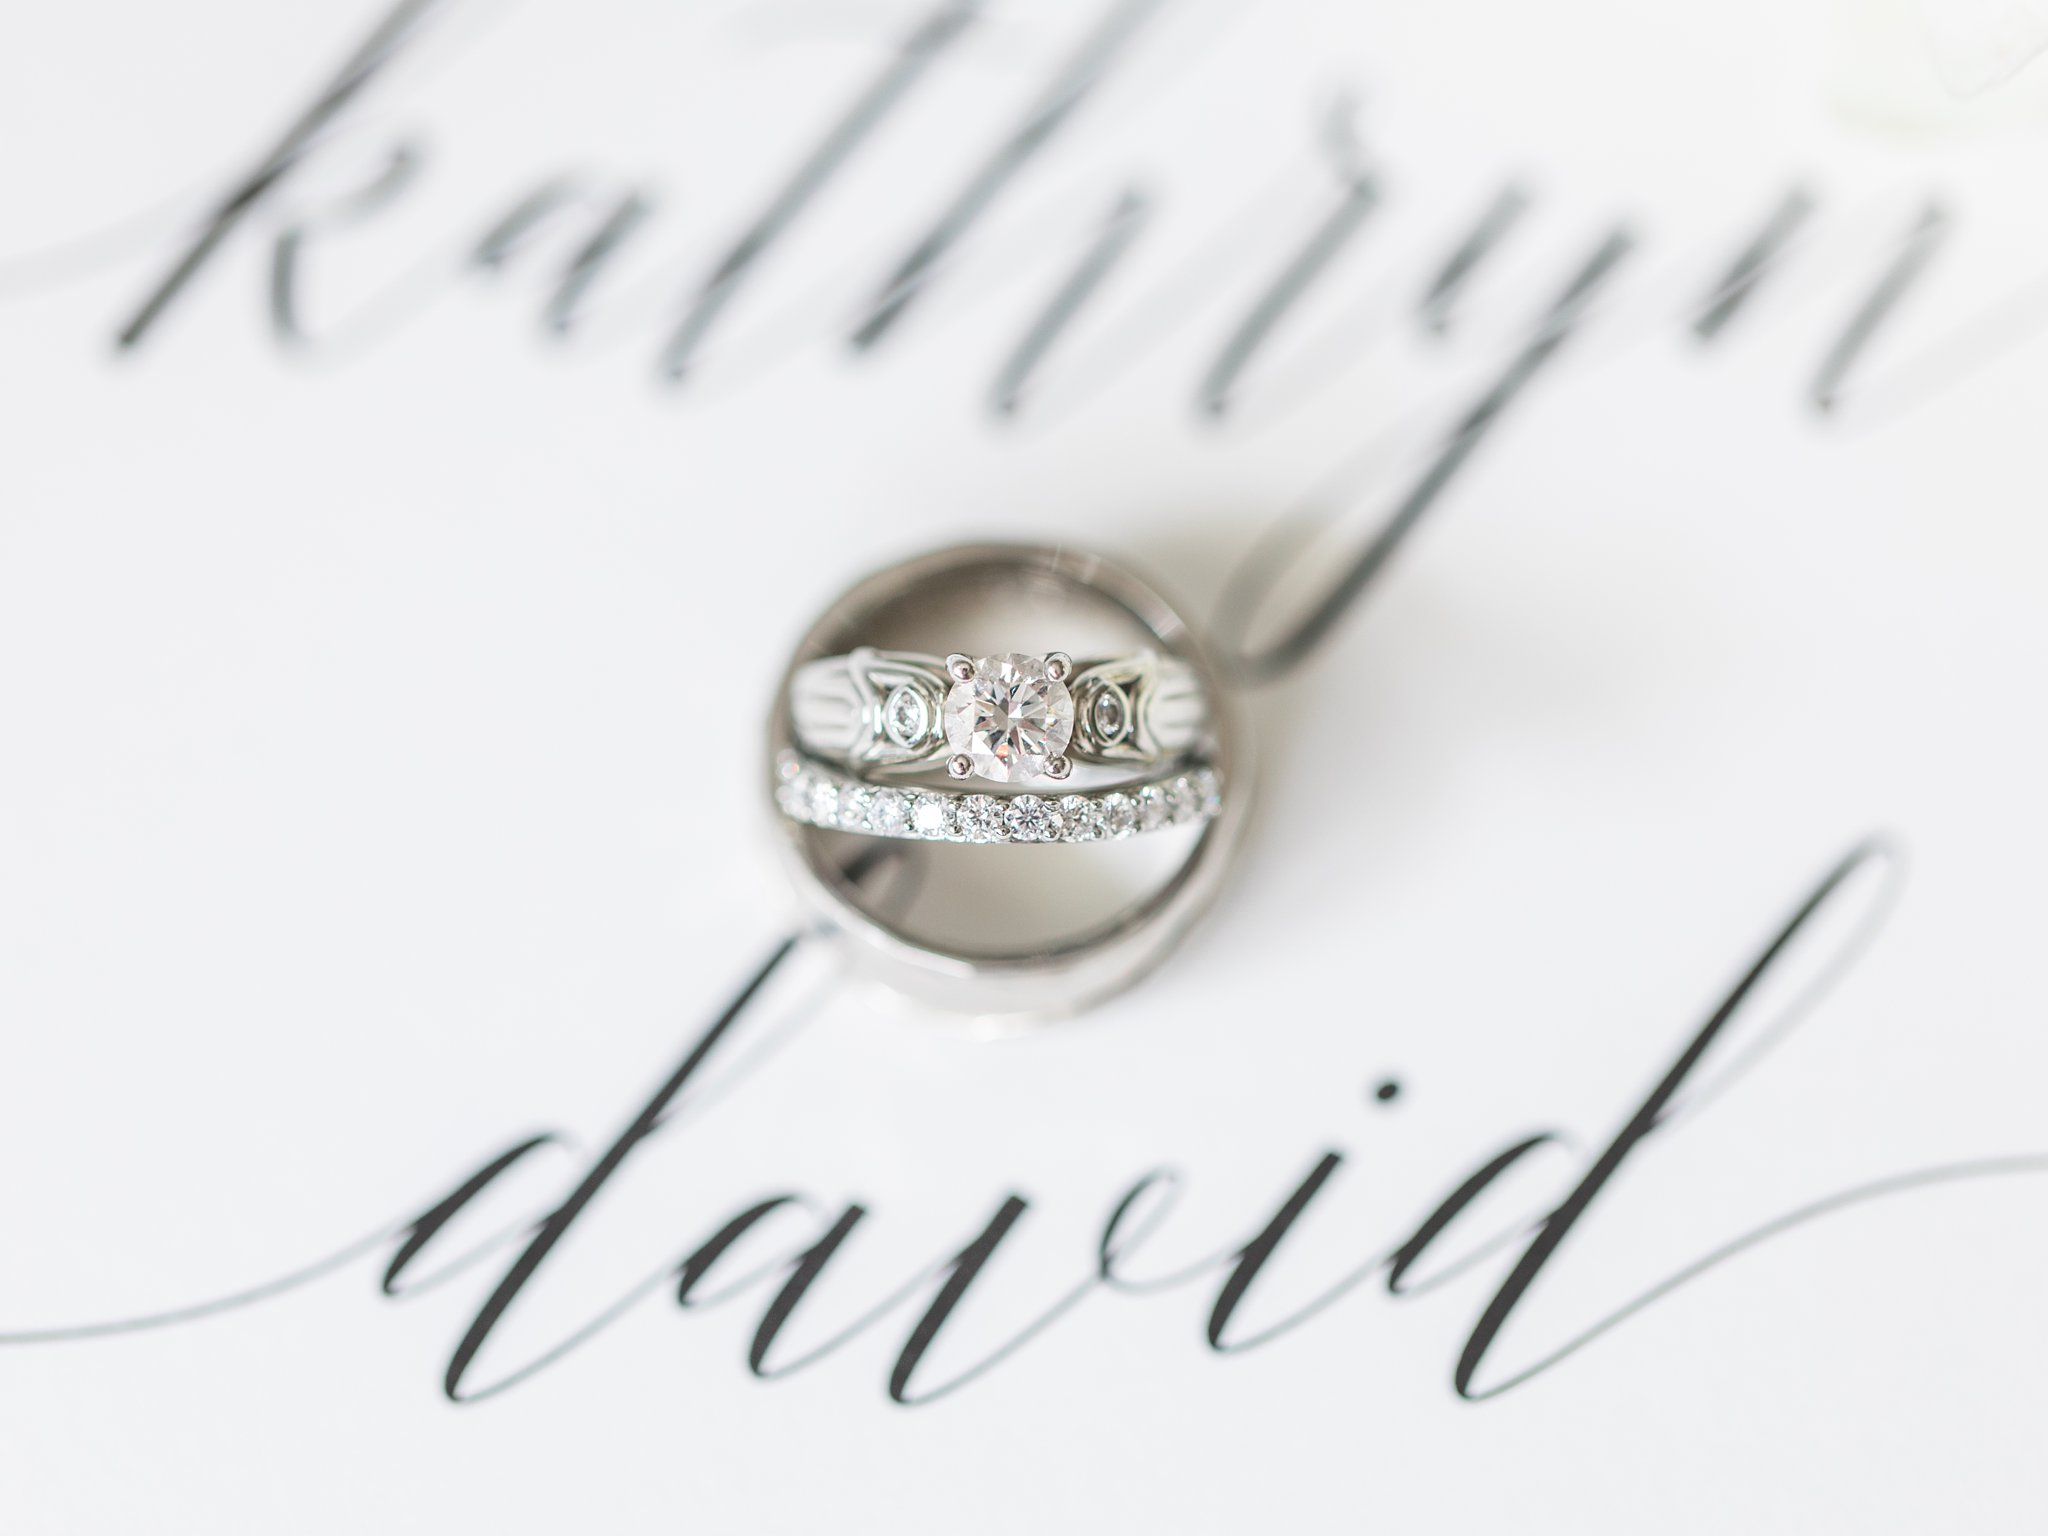 Custom engagement ring with engravings PBR Designs Horticulture Building wedding at Lansdowne Amy Pinder Photography